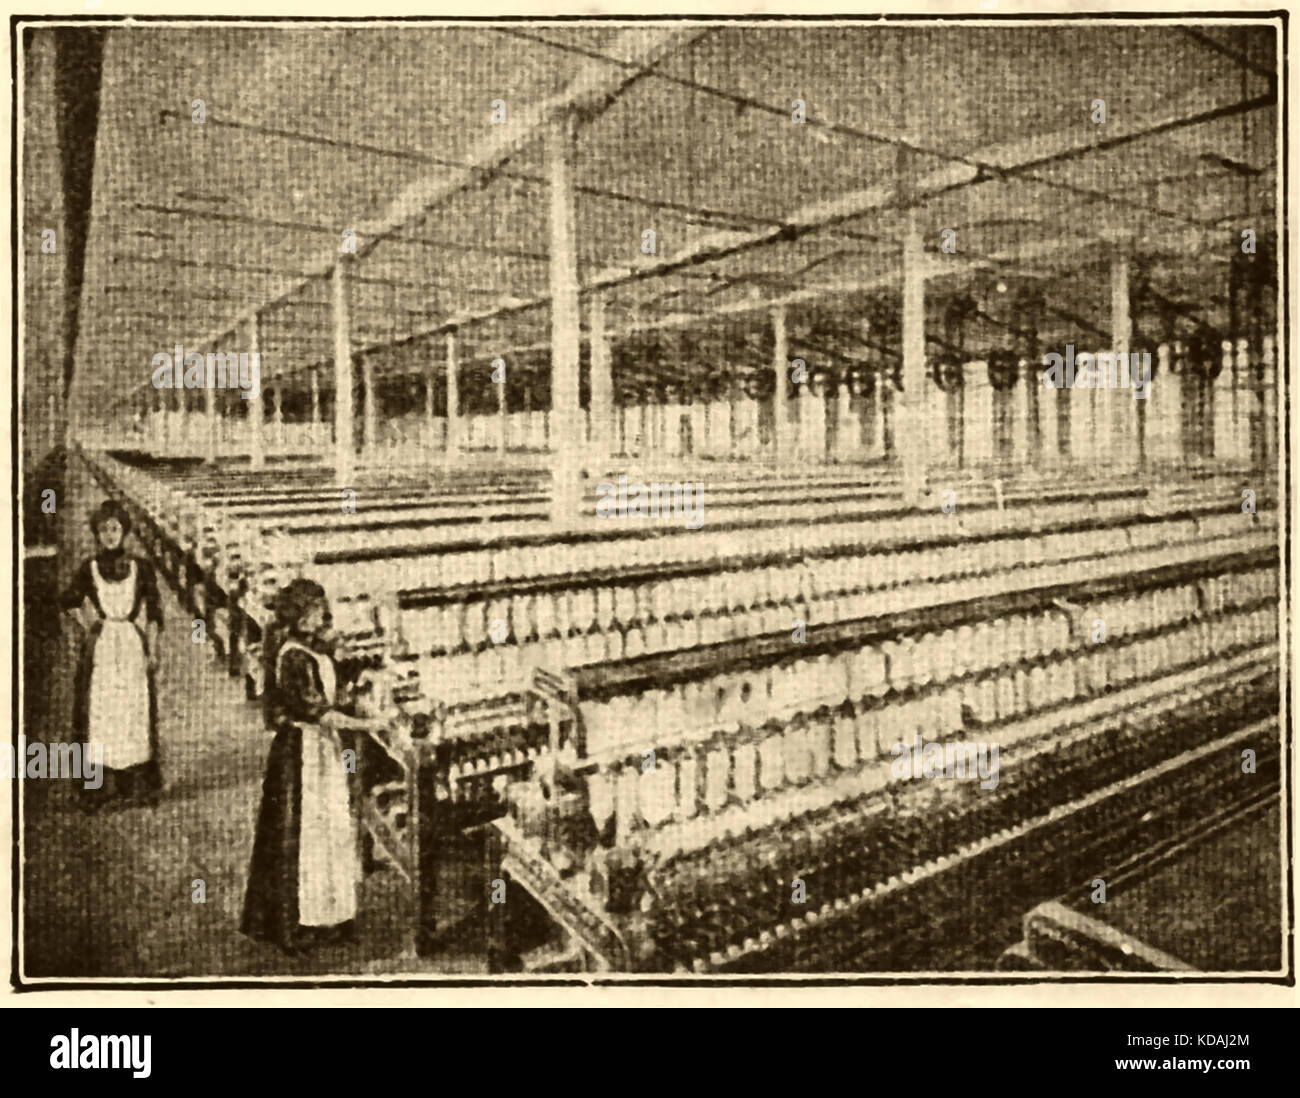 Inside a Lancashire (UK) cotton mill in 1914. Stock Photo